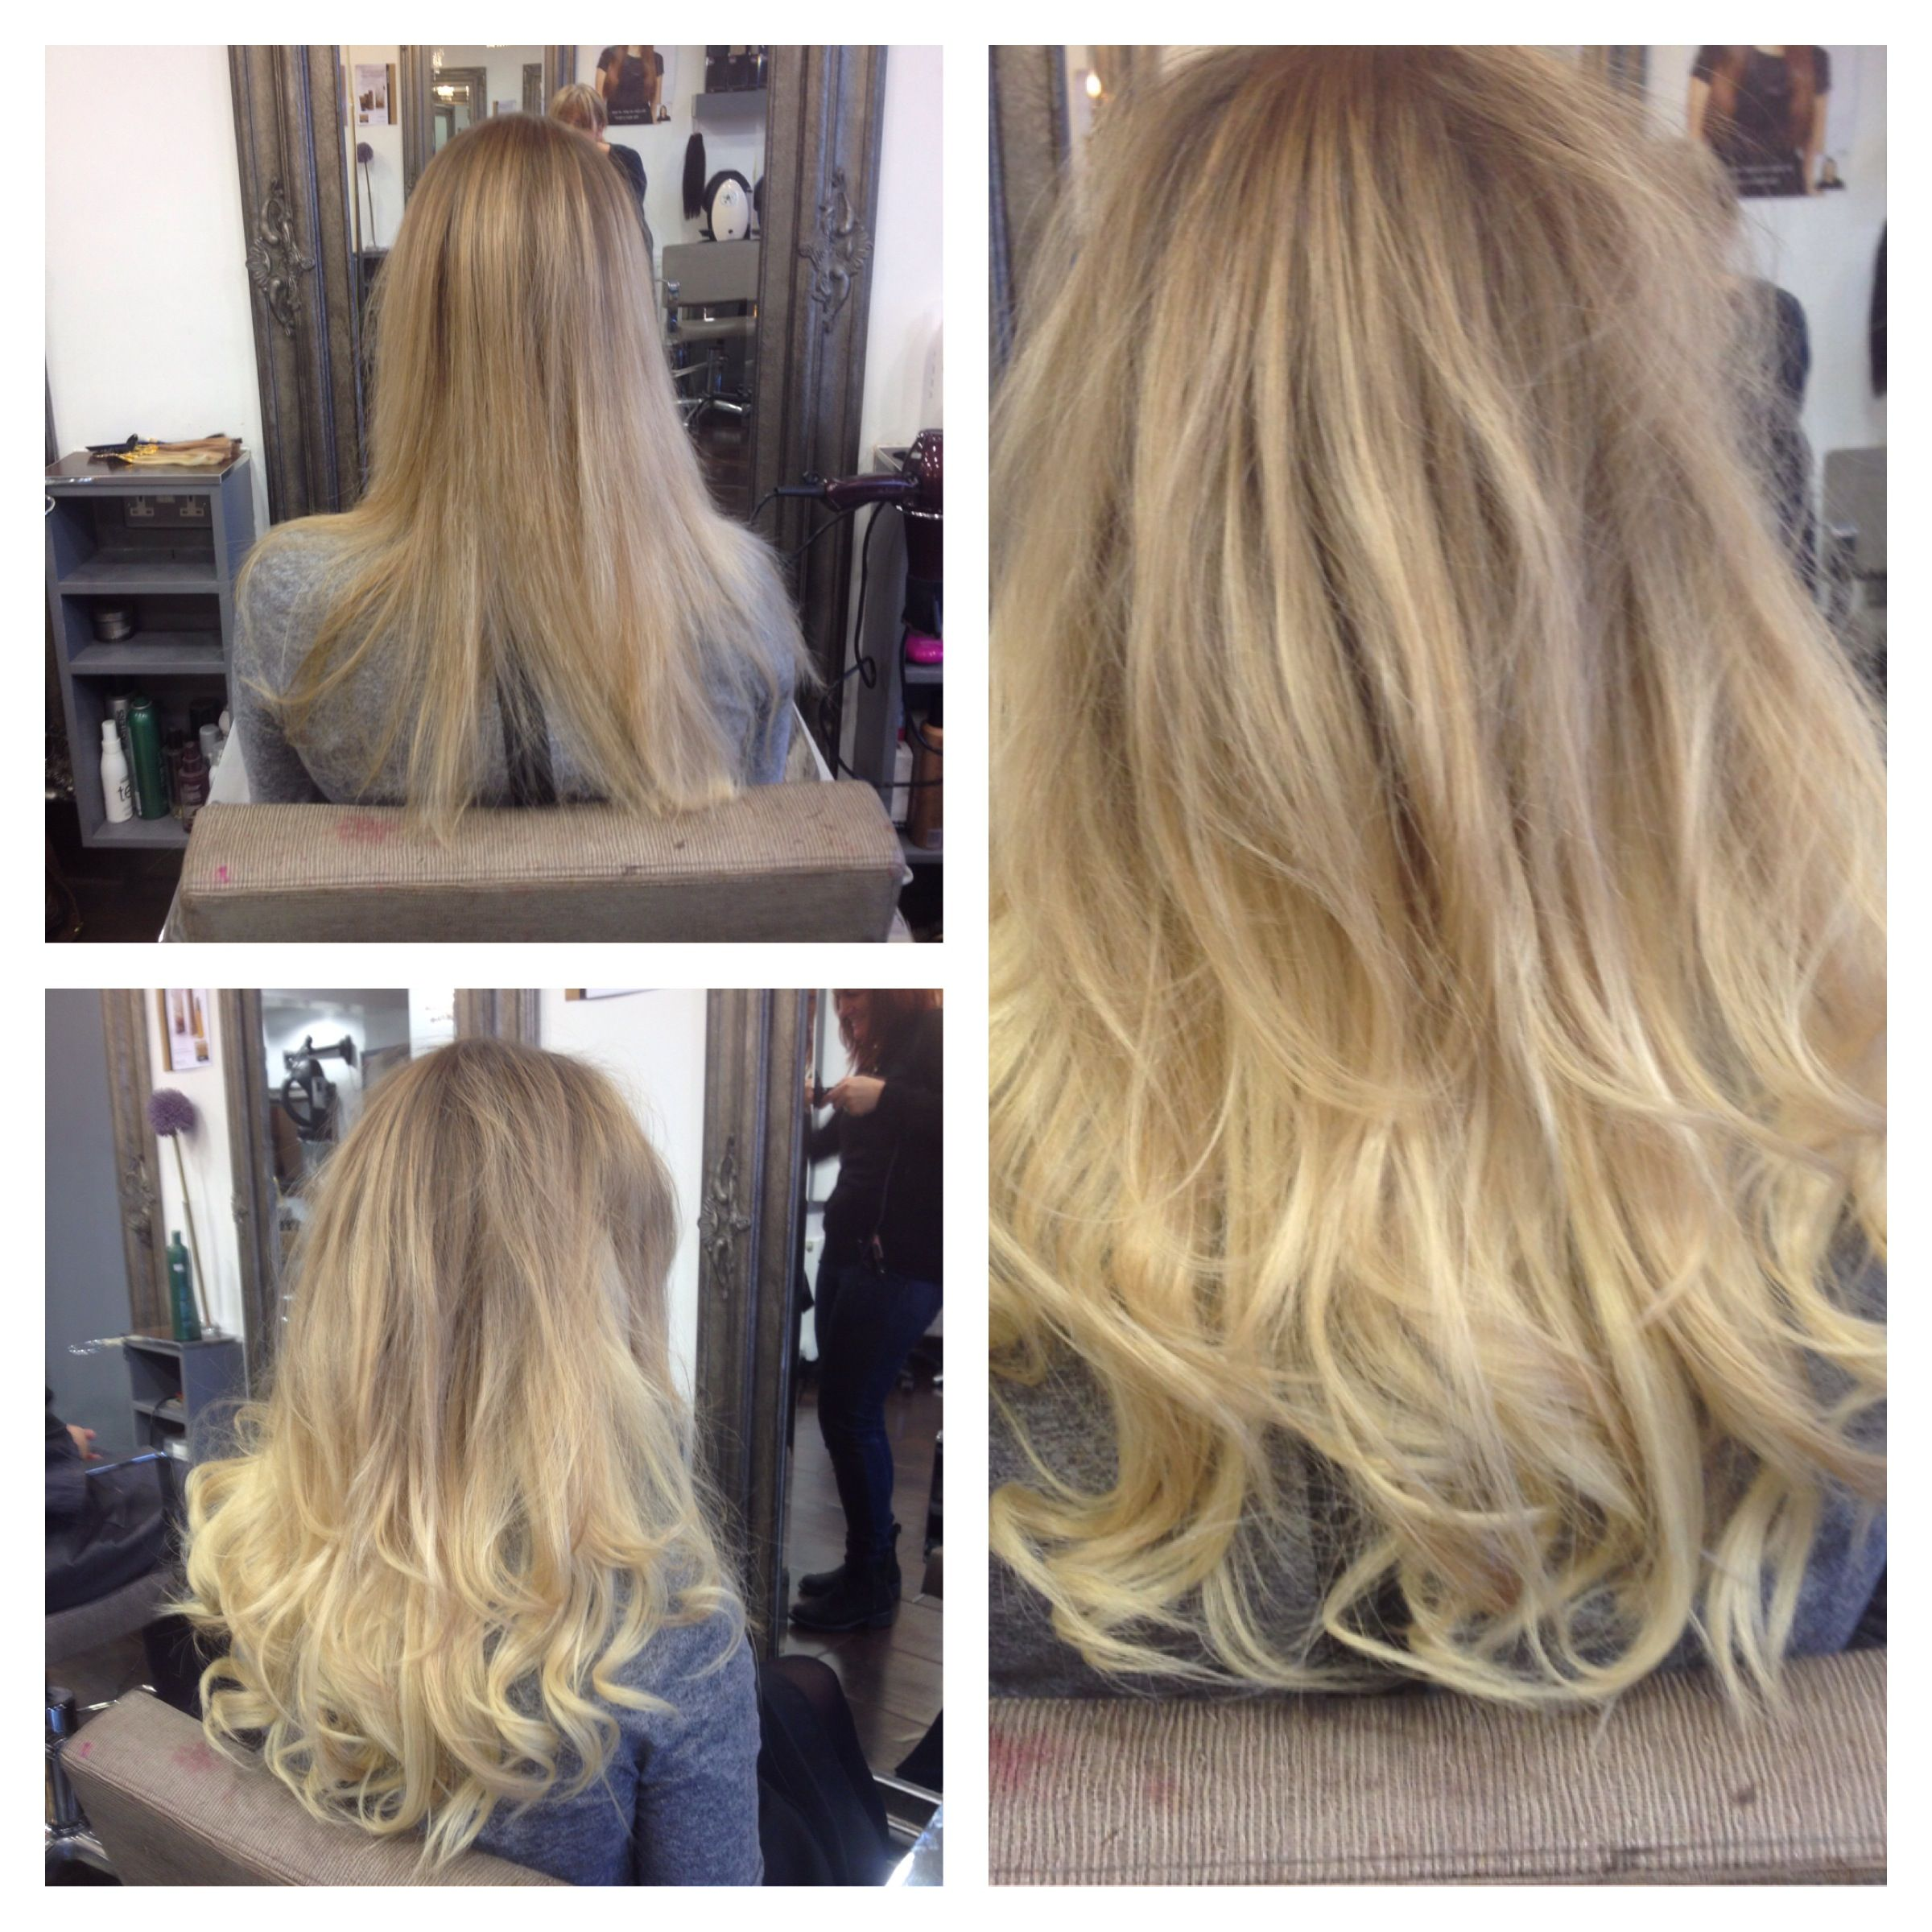 Big hugs to the team at colour lounge who recently styled a golden big hugs to the team at colour lounge who recently styled a golden blonde halo for halo hair extensionsbefore pmusecretfo Image collections